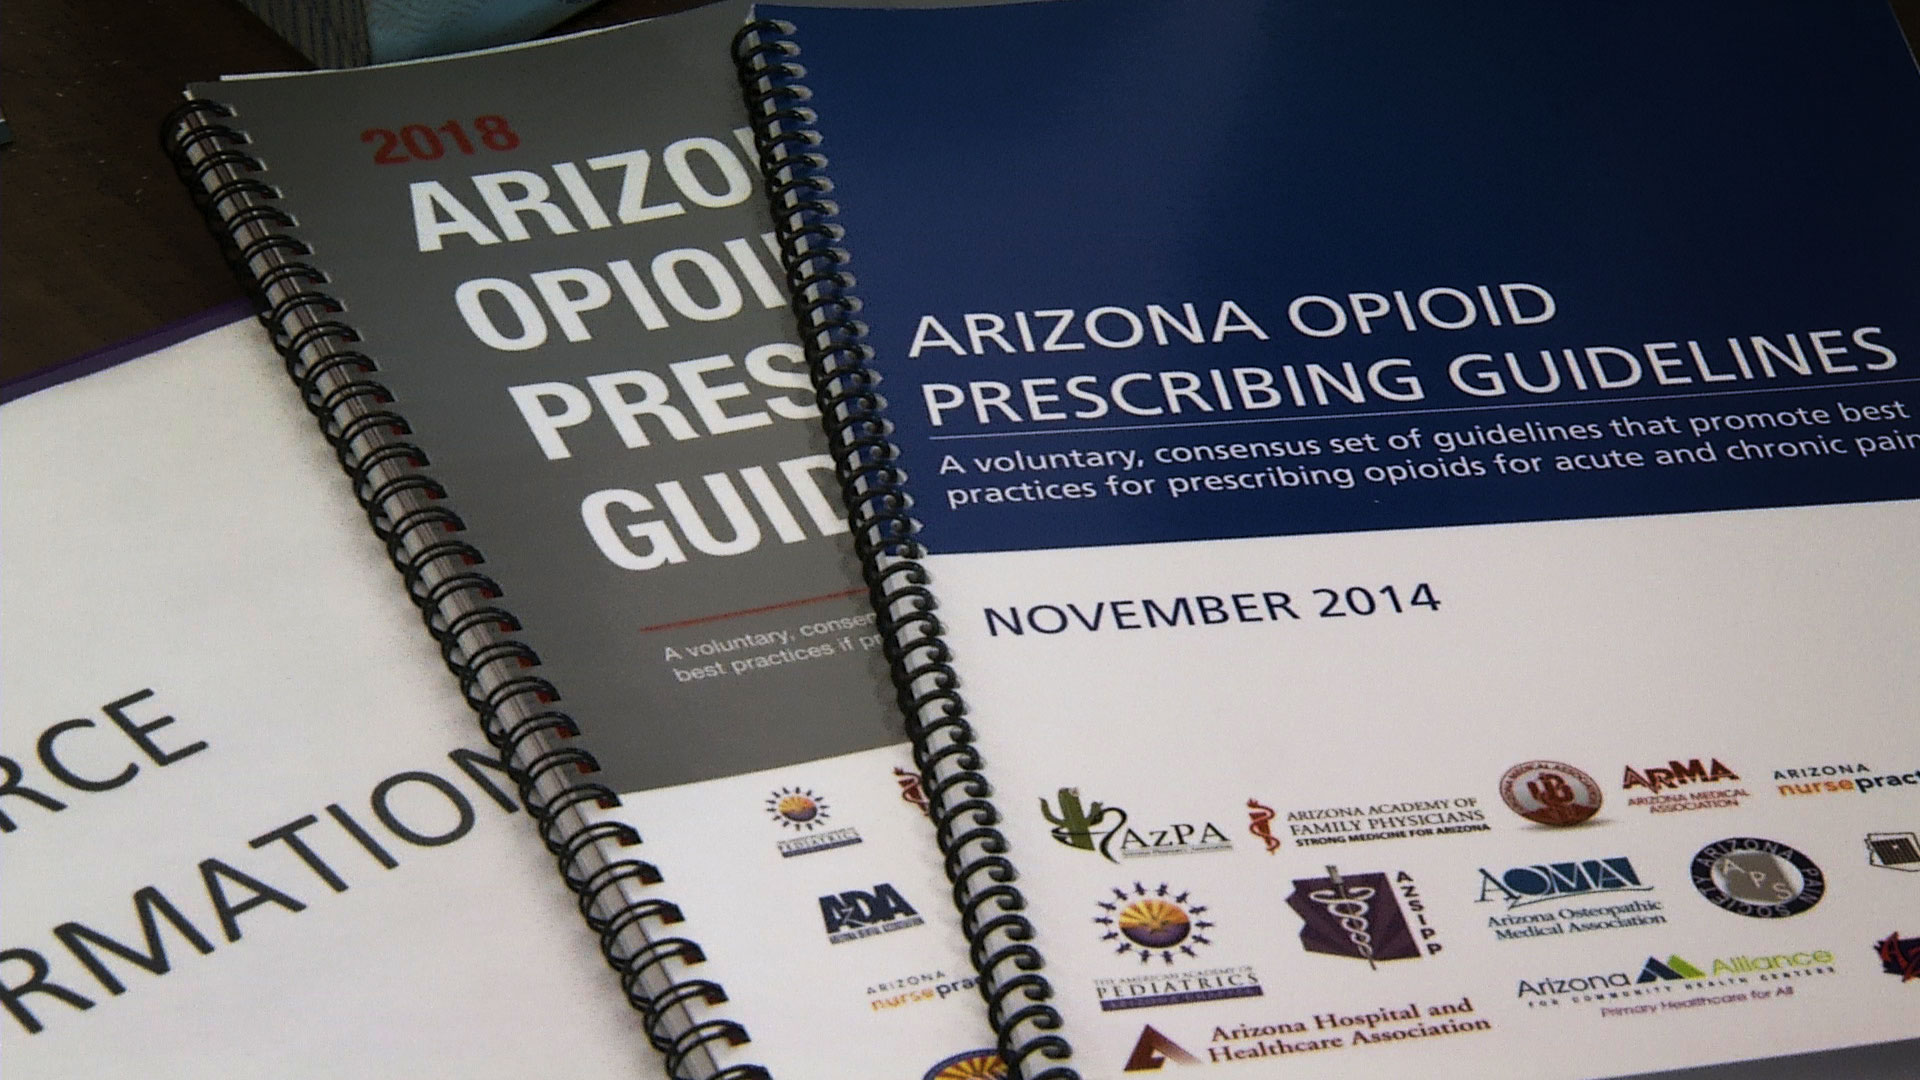 Manuals detailing Arizona's prescribing guidelines for opioids.